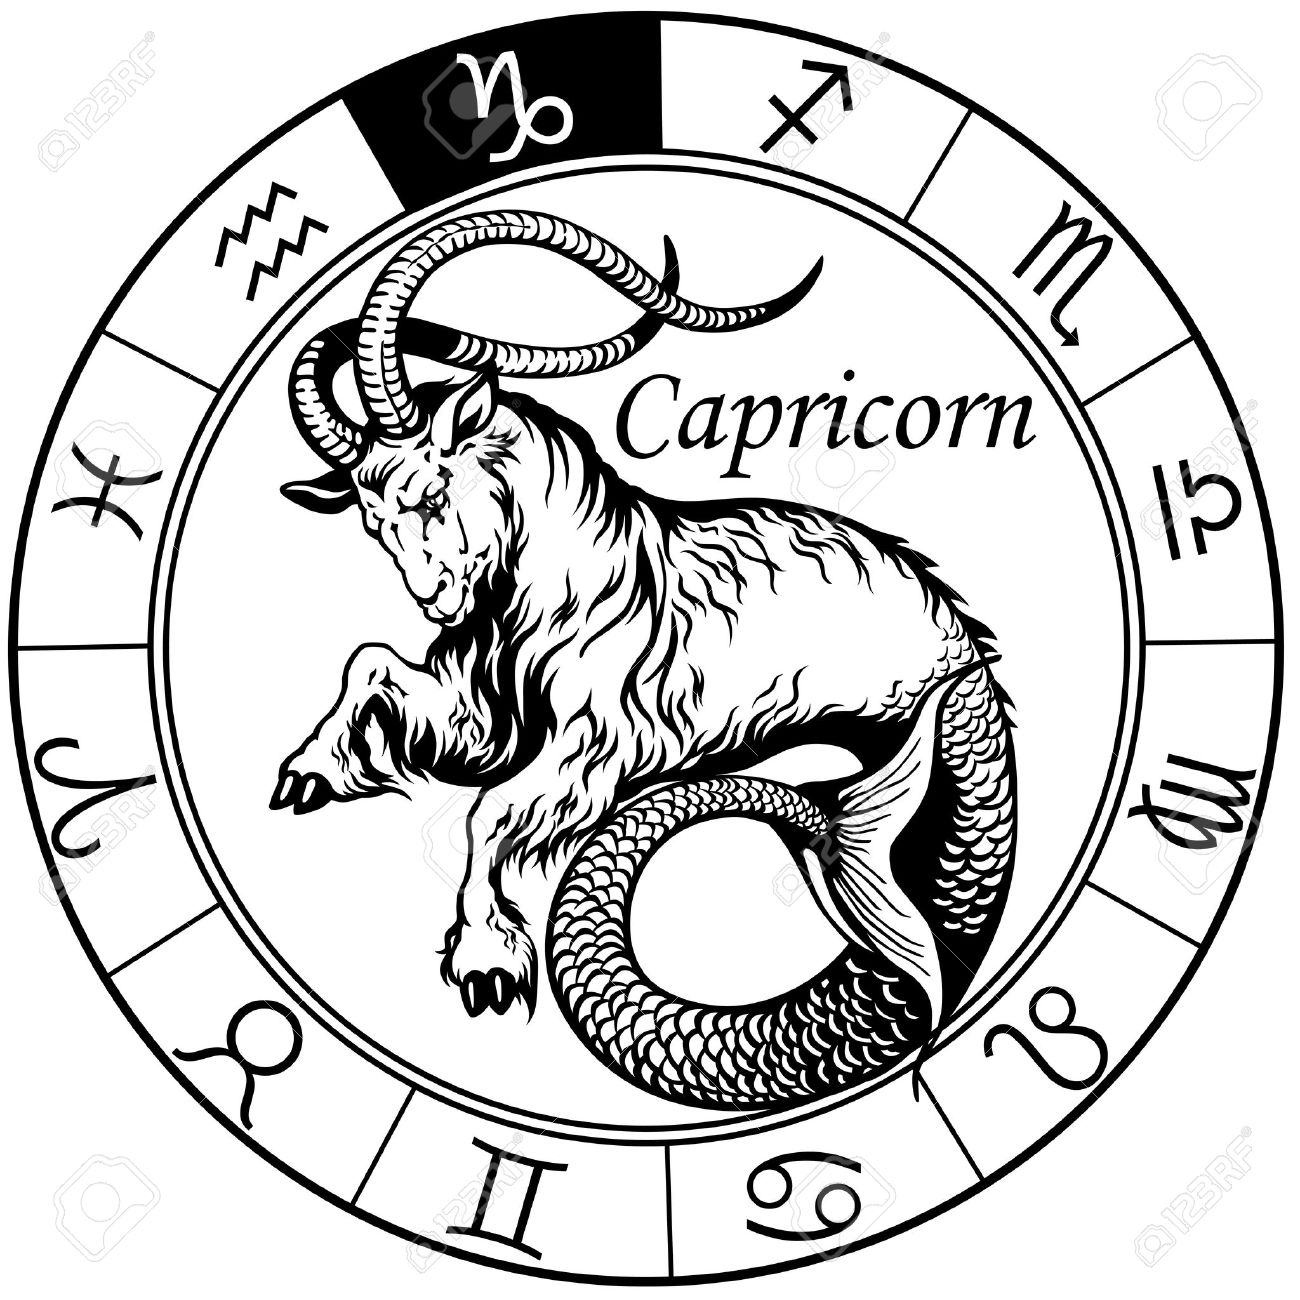 50 best capricorn tattoo designs with meanings for men women for Tattoo horoscope signs